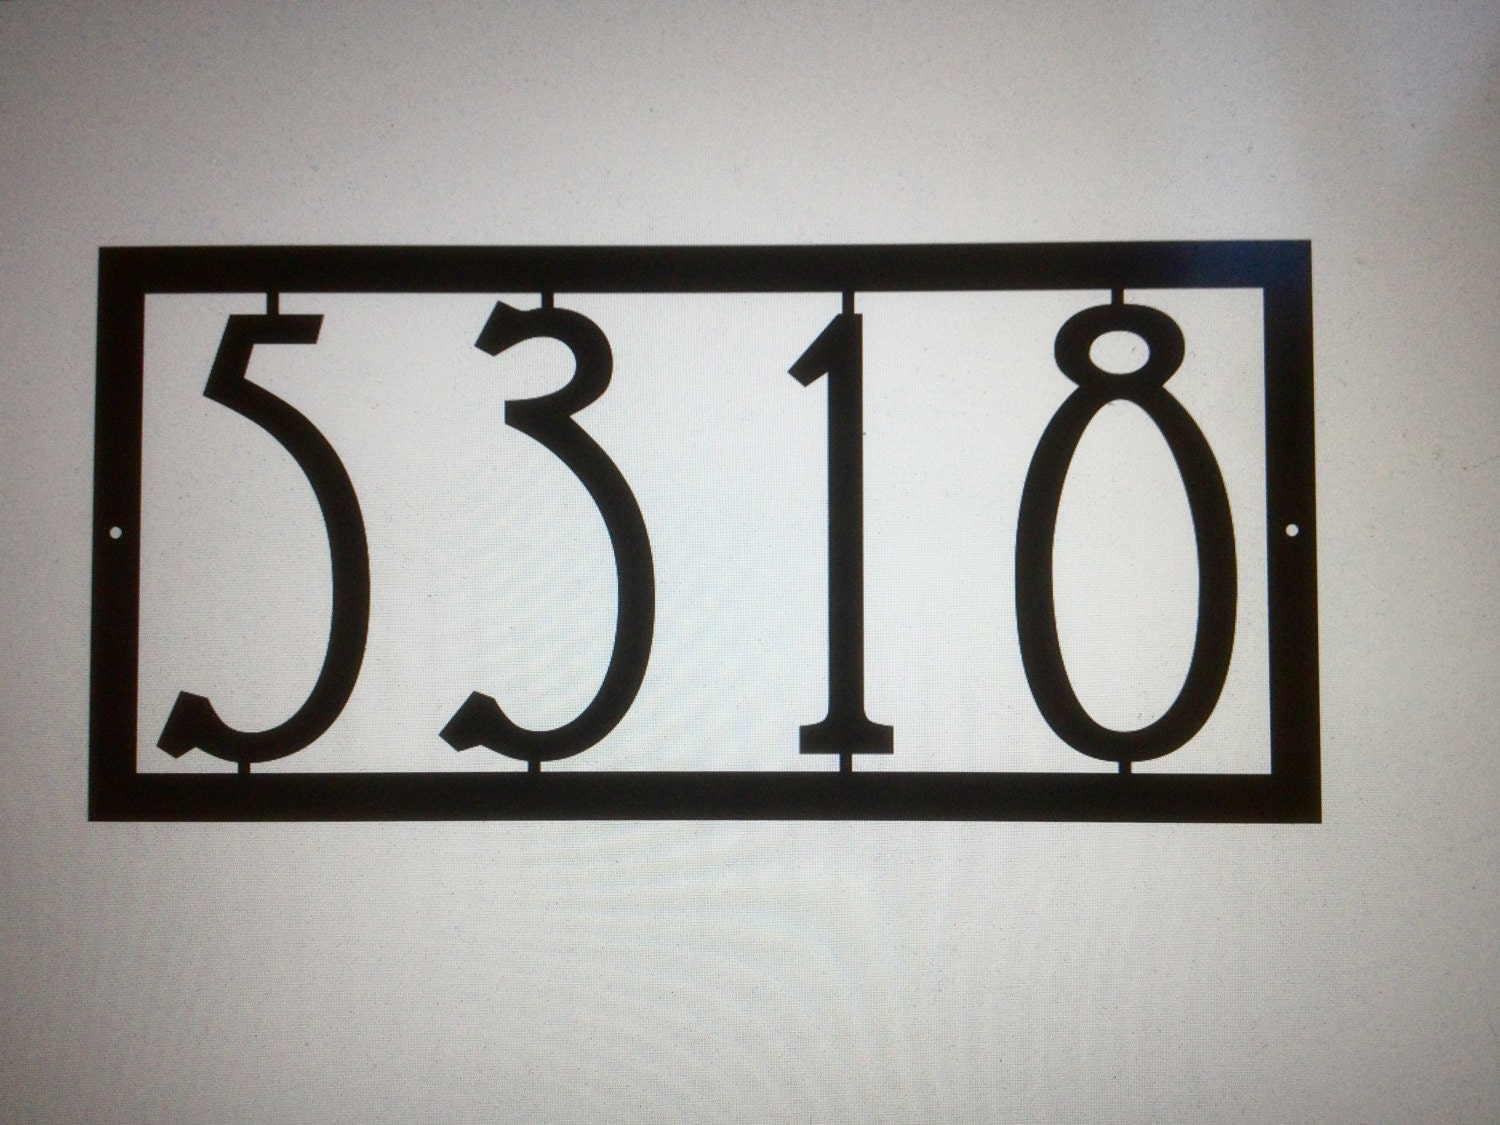 mission house numbers art deco house number by glamorousfindings. Black Bedroom Furniture Sets. Home Design Ideas